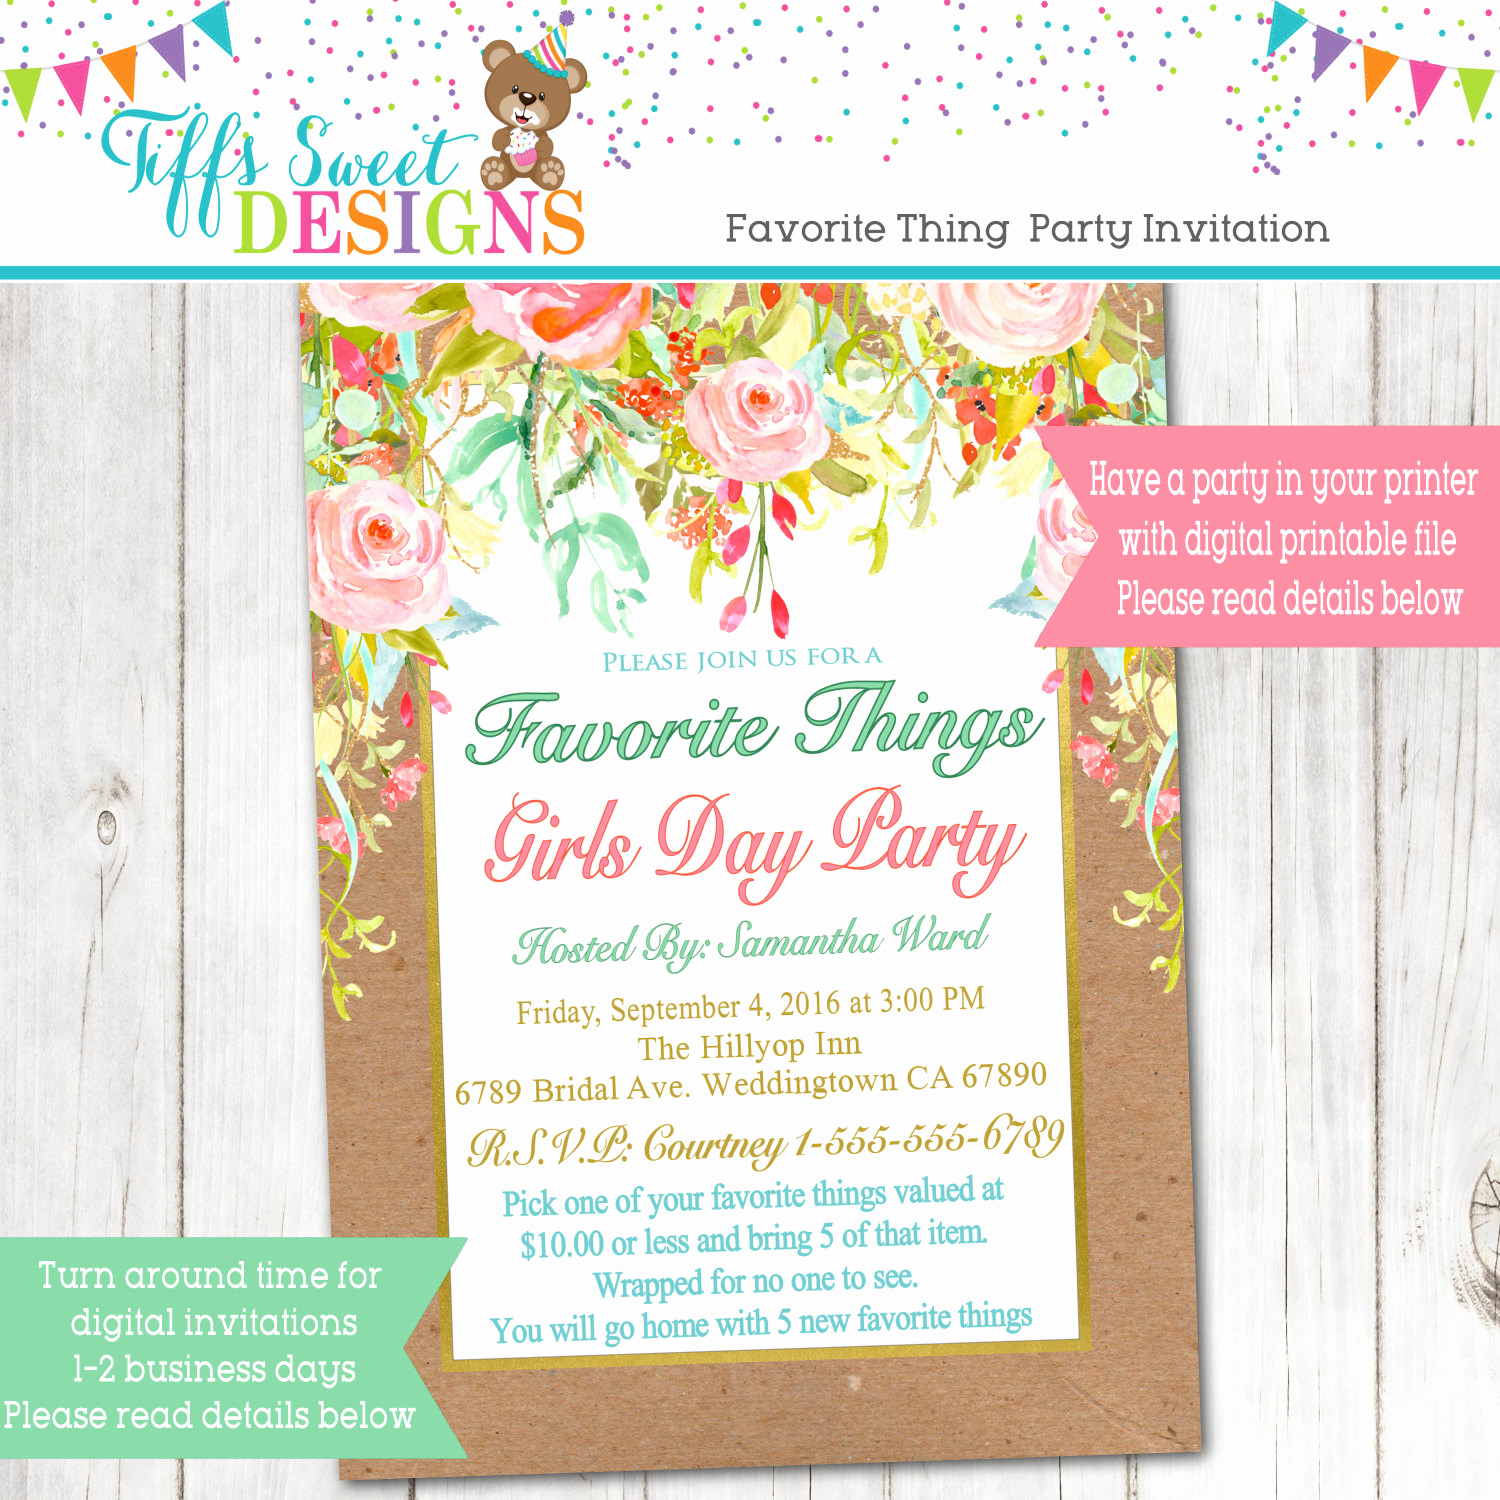 Favorite Things Party Invitation Best Of Favorite Things Girls Day Party Favorite Girls Night Party